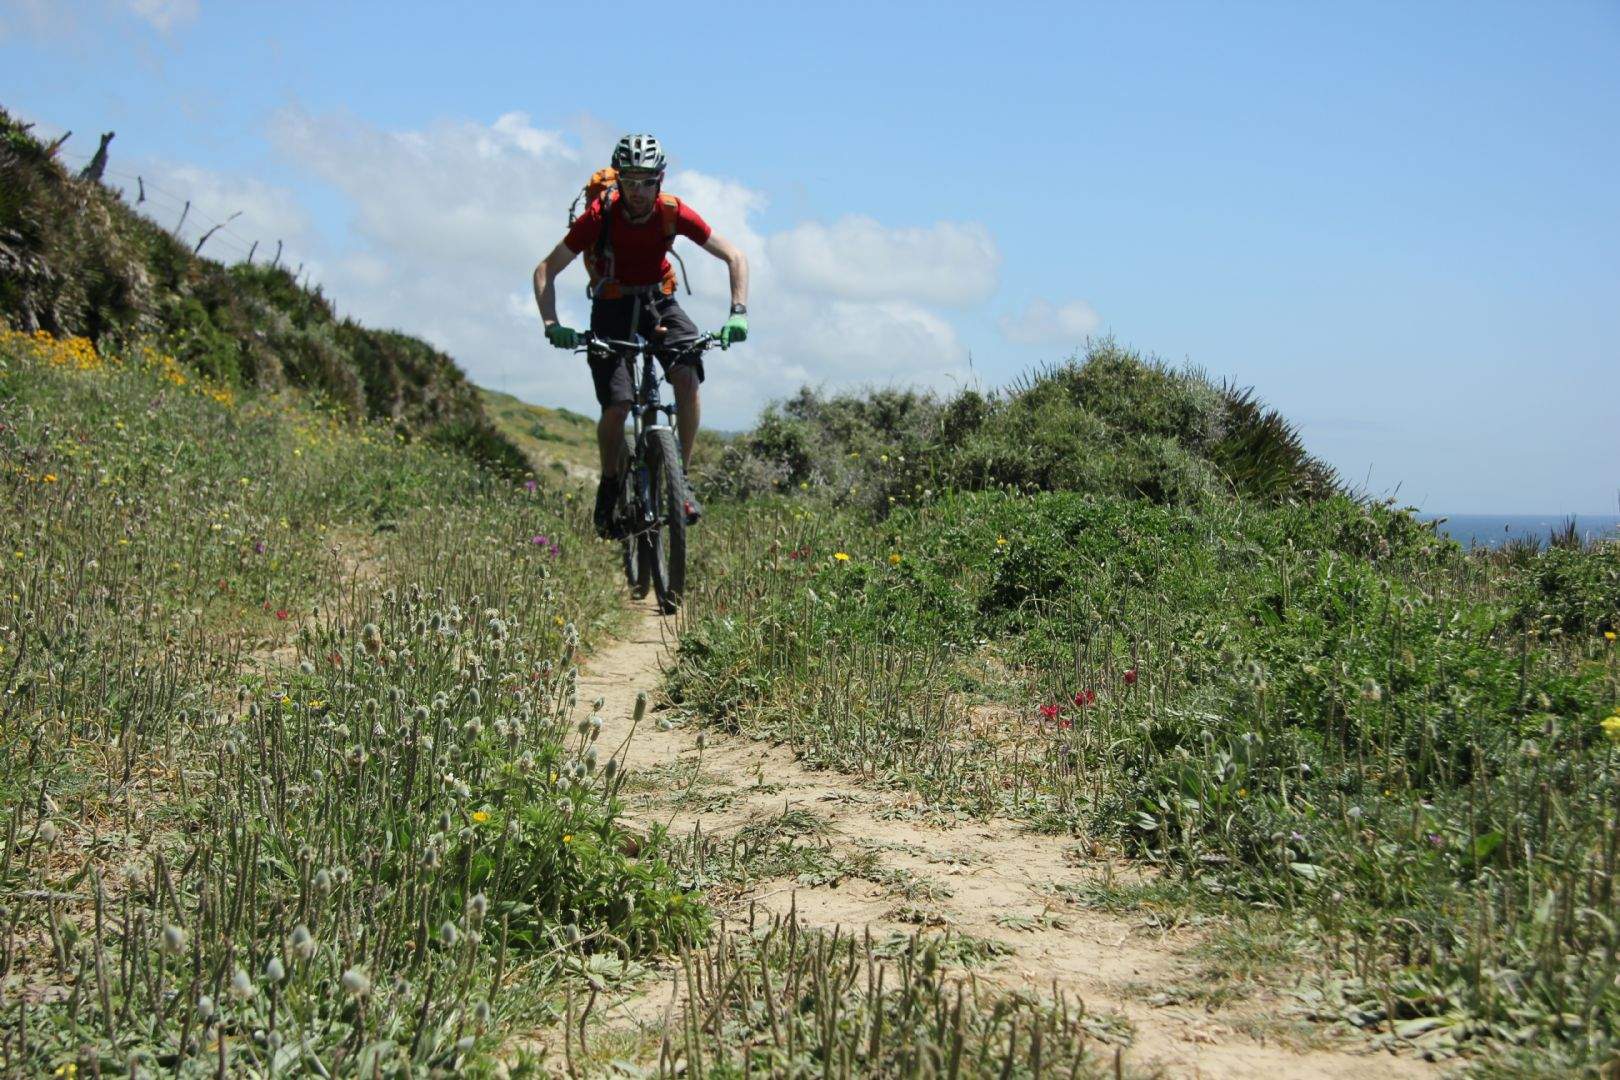 mountain-biking-holiday-in-spain-andalucia-mtb.jpg - Spain - Sensational Sierra Nevada - Guided Mountain Bike Holiday - Mountain Biking